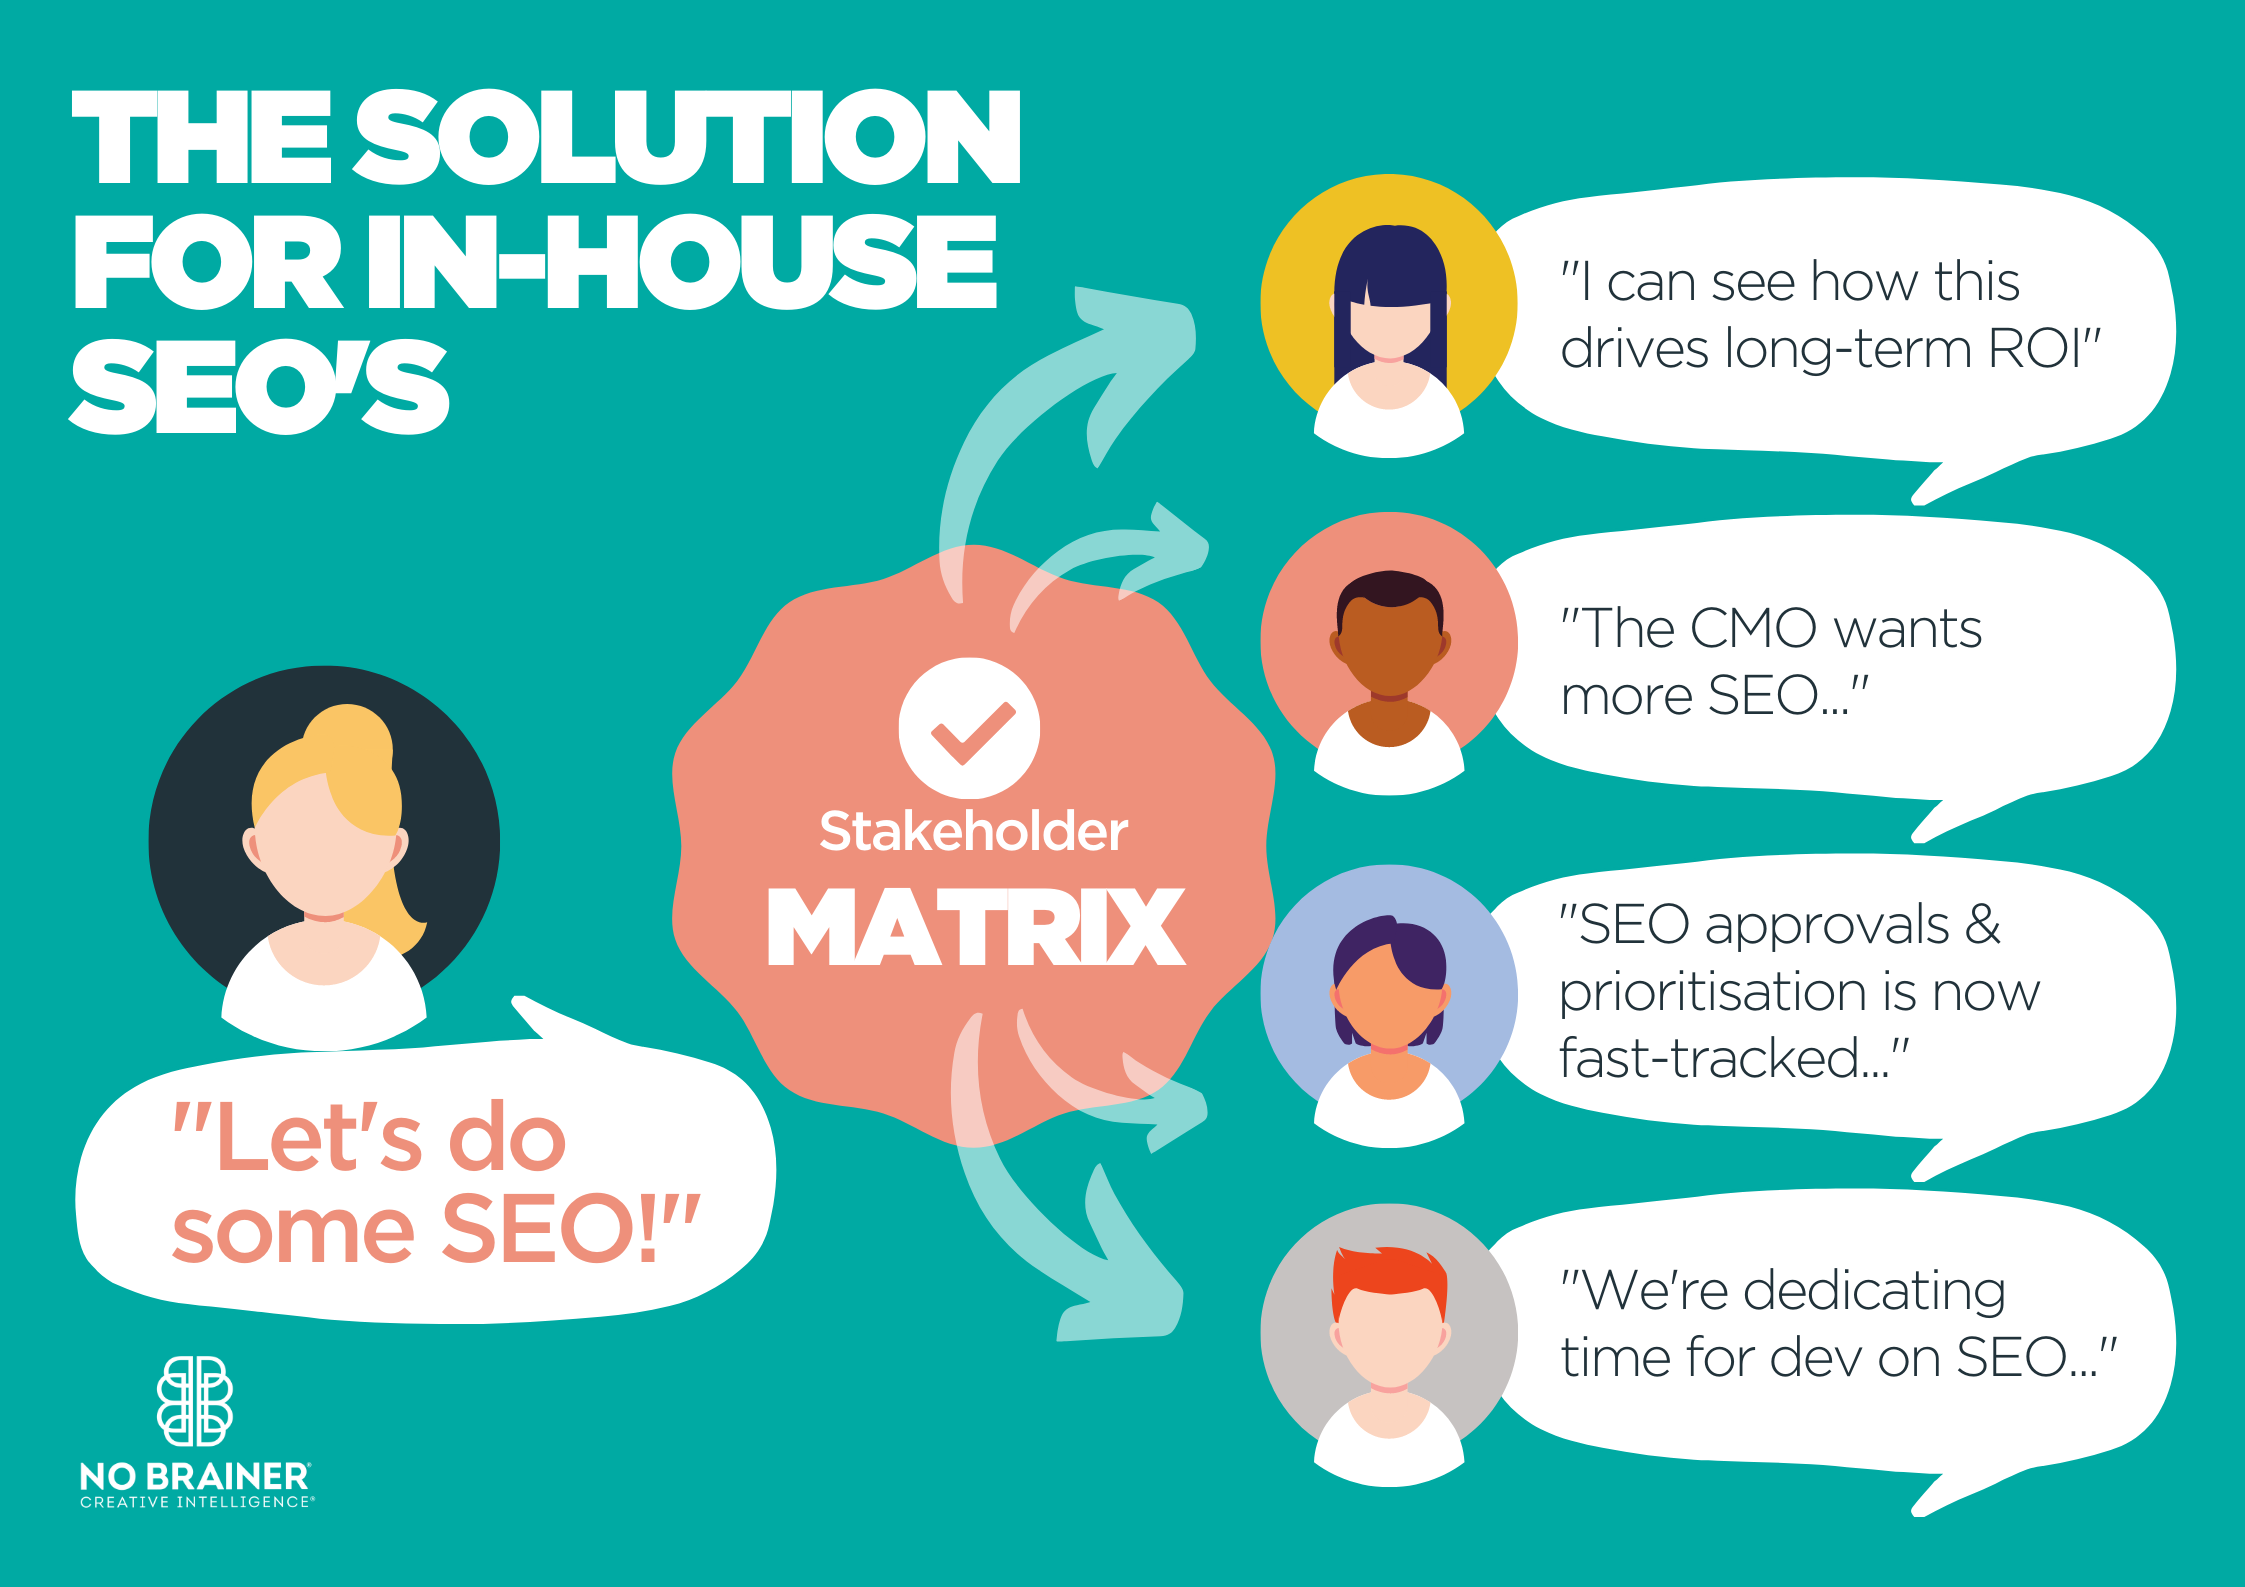 The solution for SEOs: How to get buy-in or sell SEO